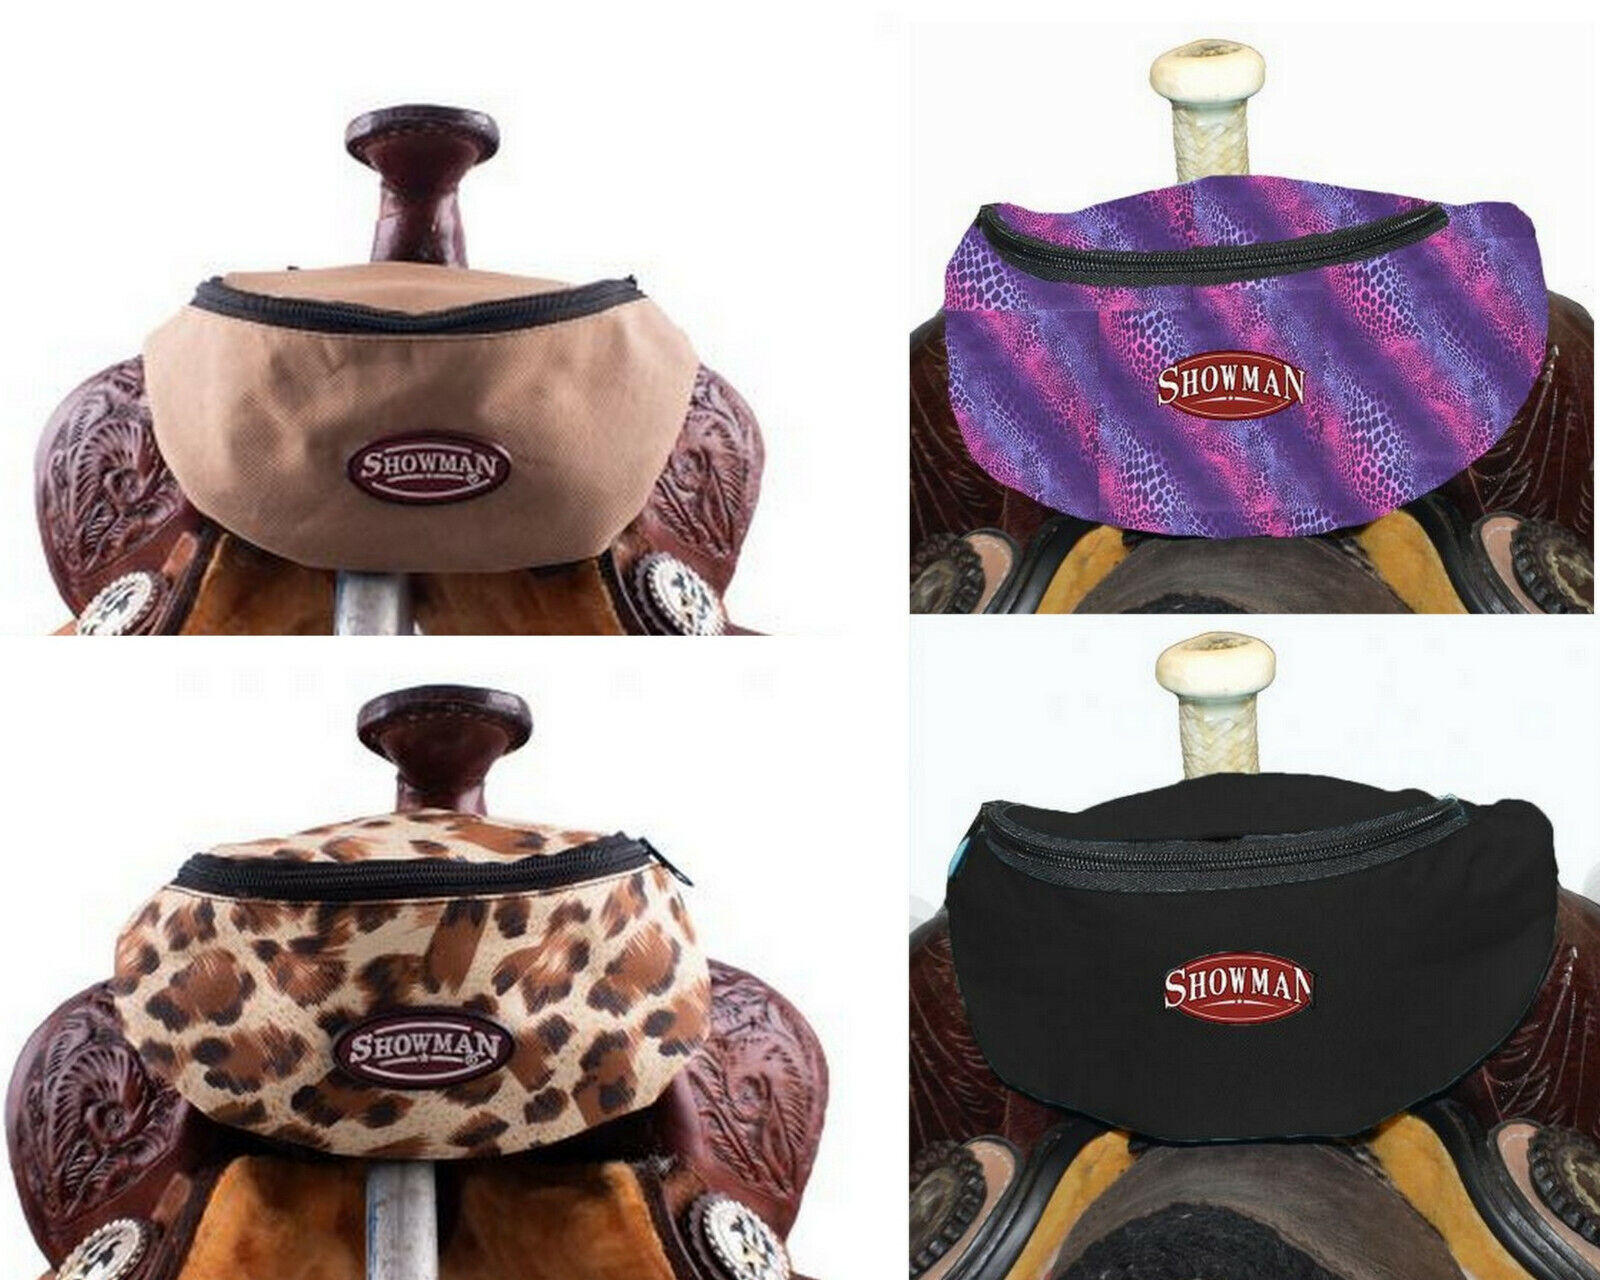 Western Horse Saddle Sack Lined Pouch / Bag Attaches to your